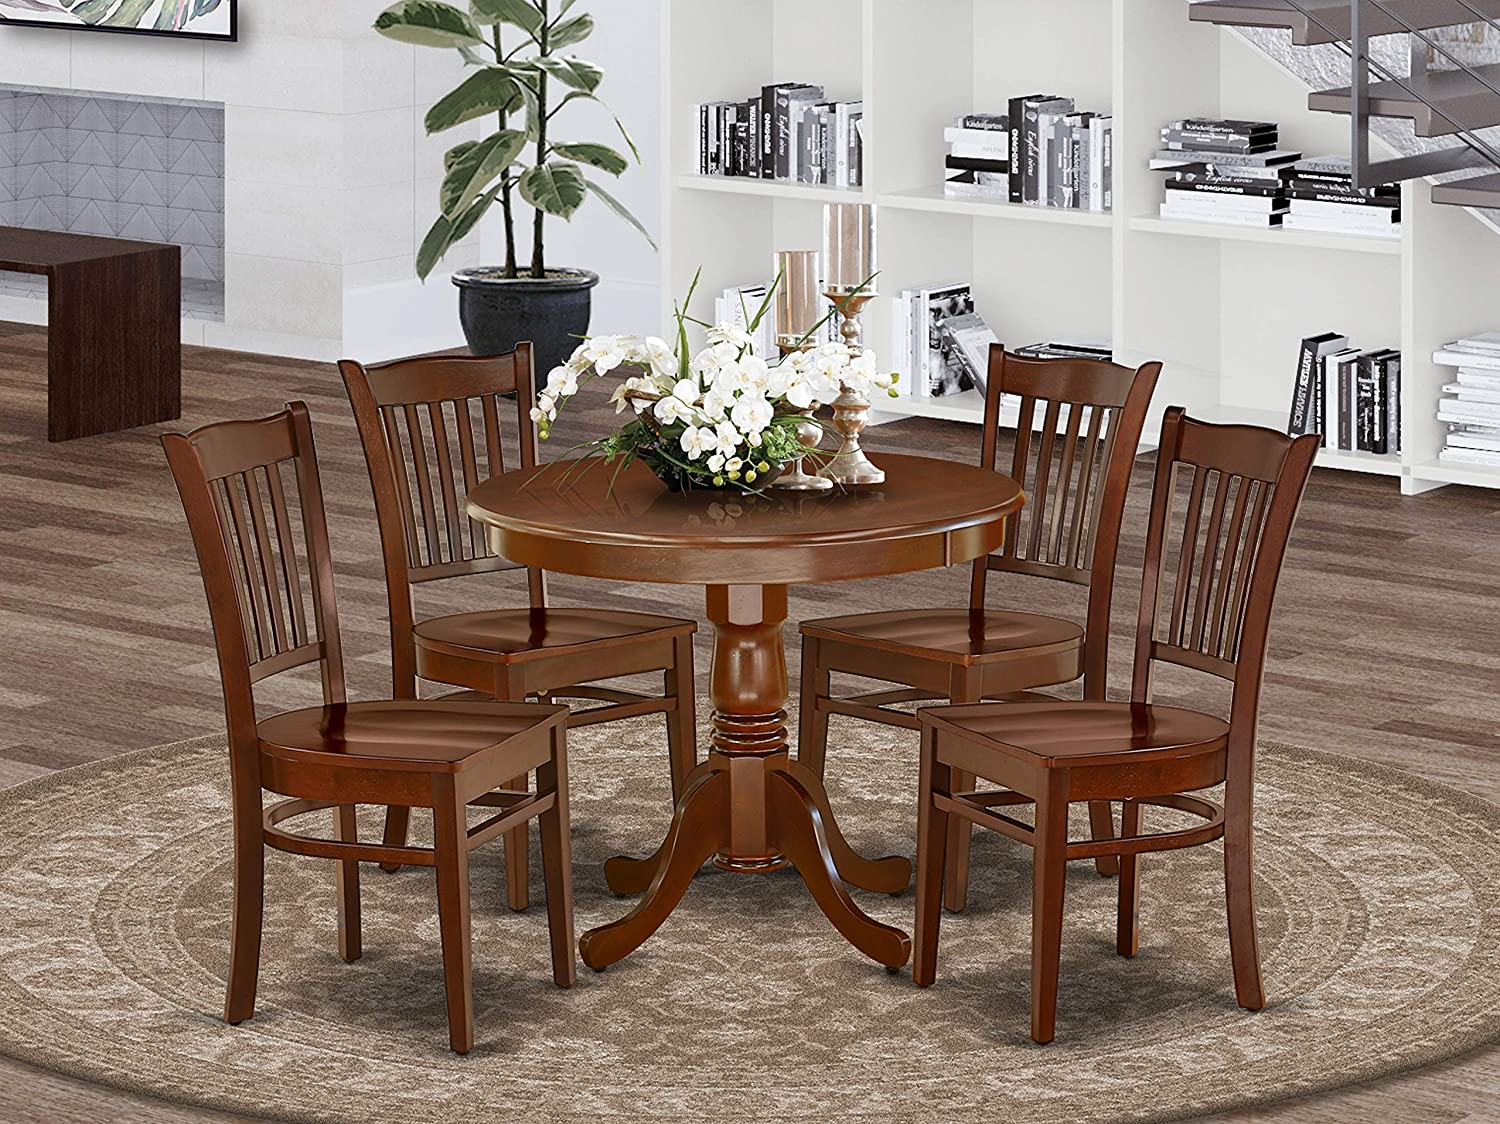 Amazon Com East West Furniture Modern Dining Table Set 4 Excellent Wooden Dining Room Chairs A Stunning Pedestal Dining Table Wooden Seat And Mahogany Wood Kitchen Table Furniture Decor